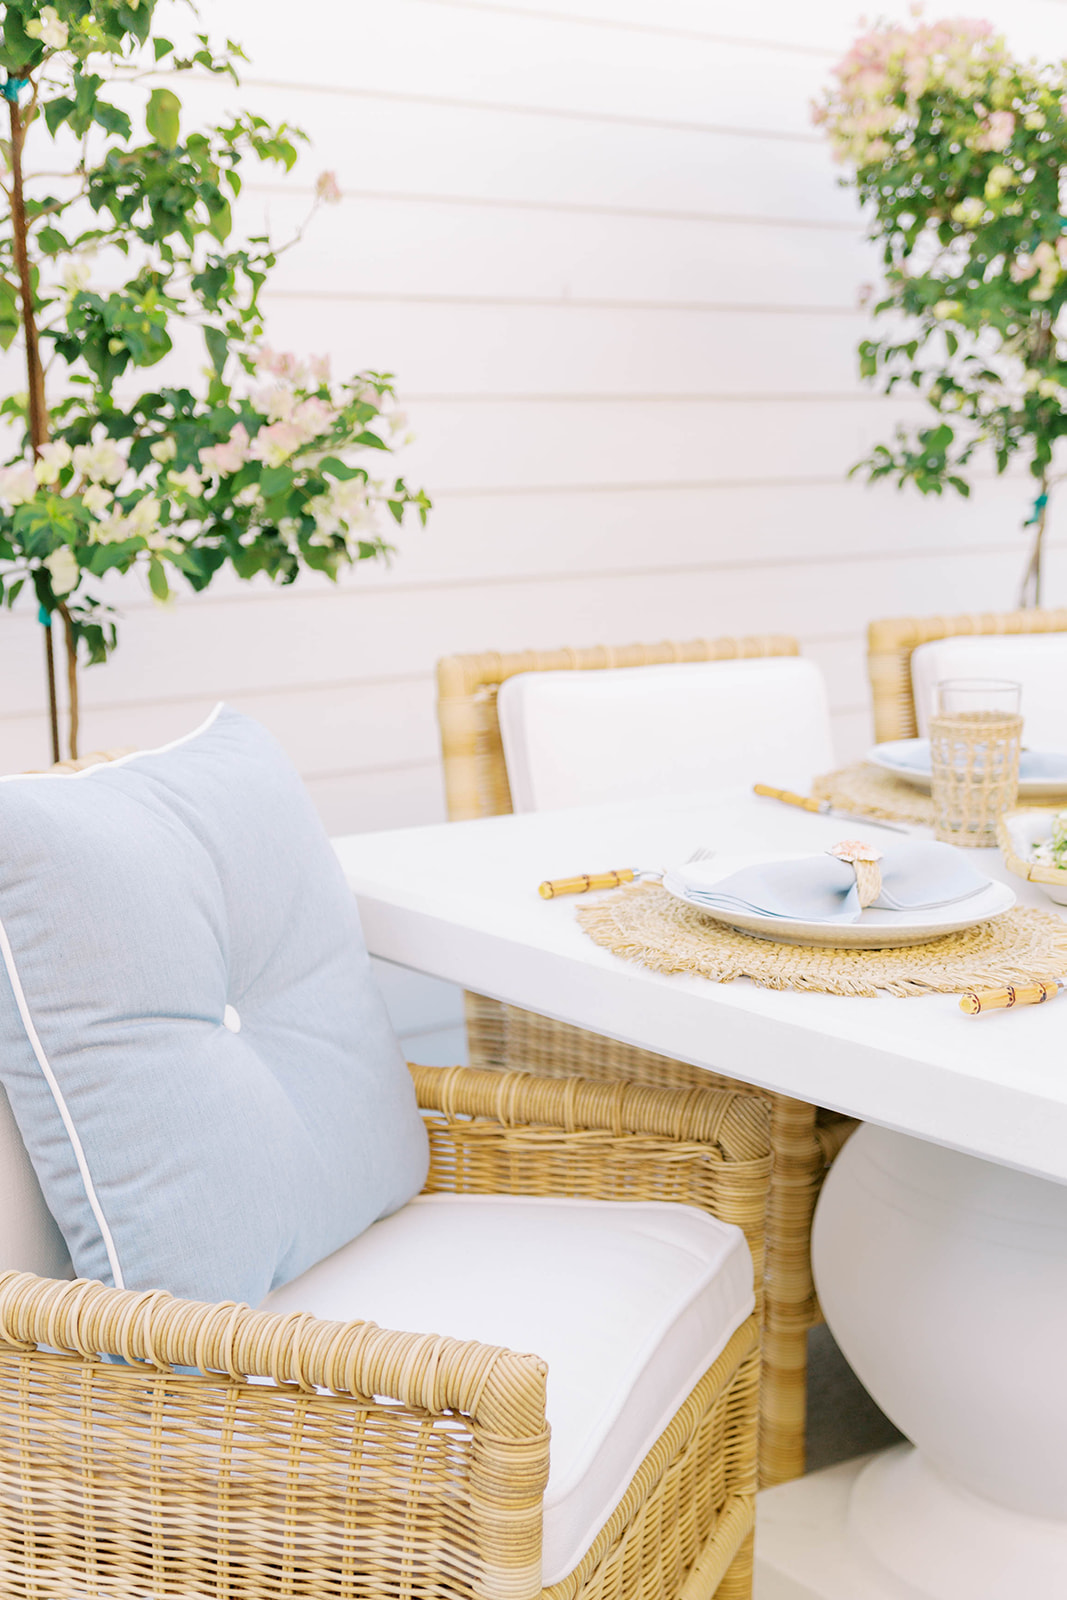 Home: Summer Patio with Serena & Lily